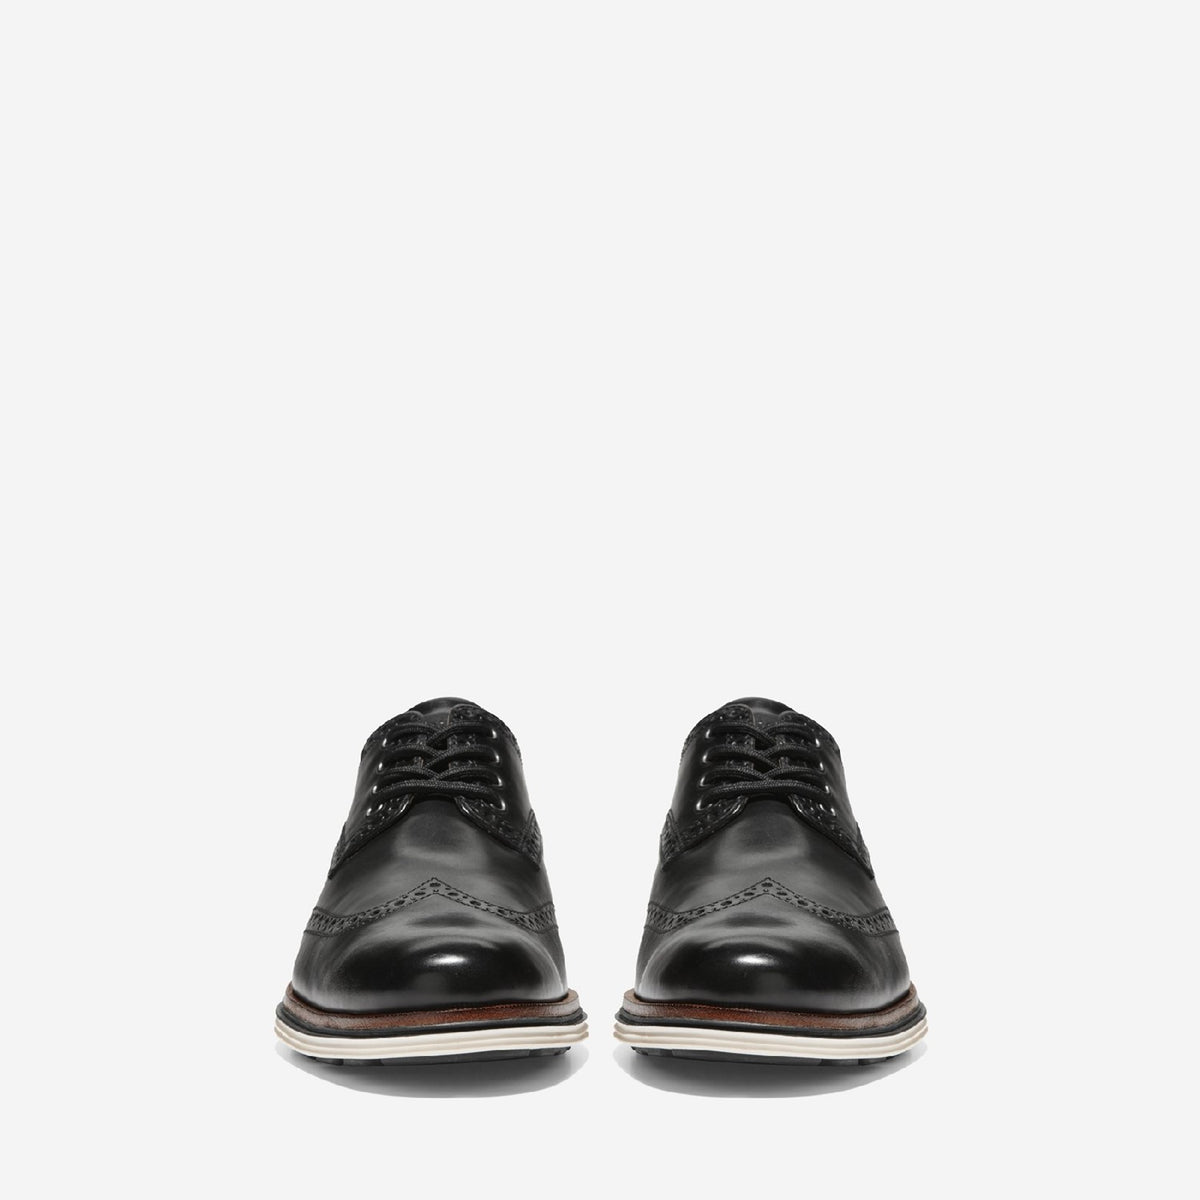 Men's ØriginalGrand Luxury Wingtip Oxford Black